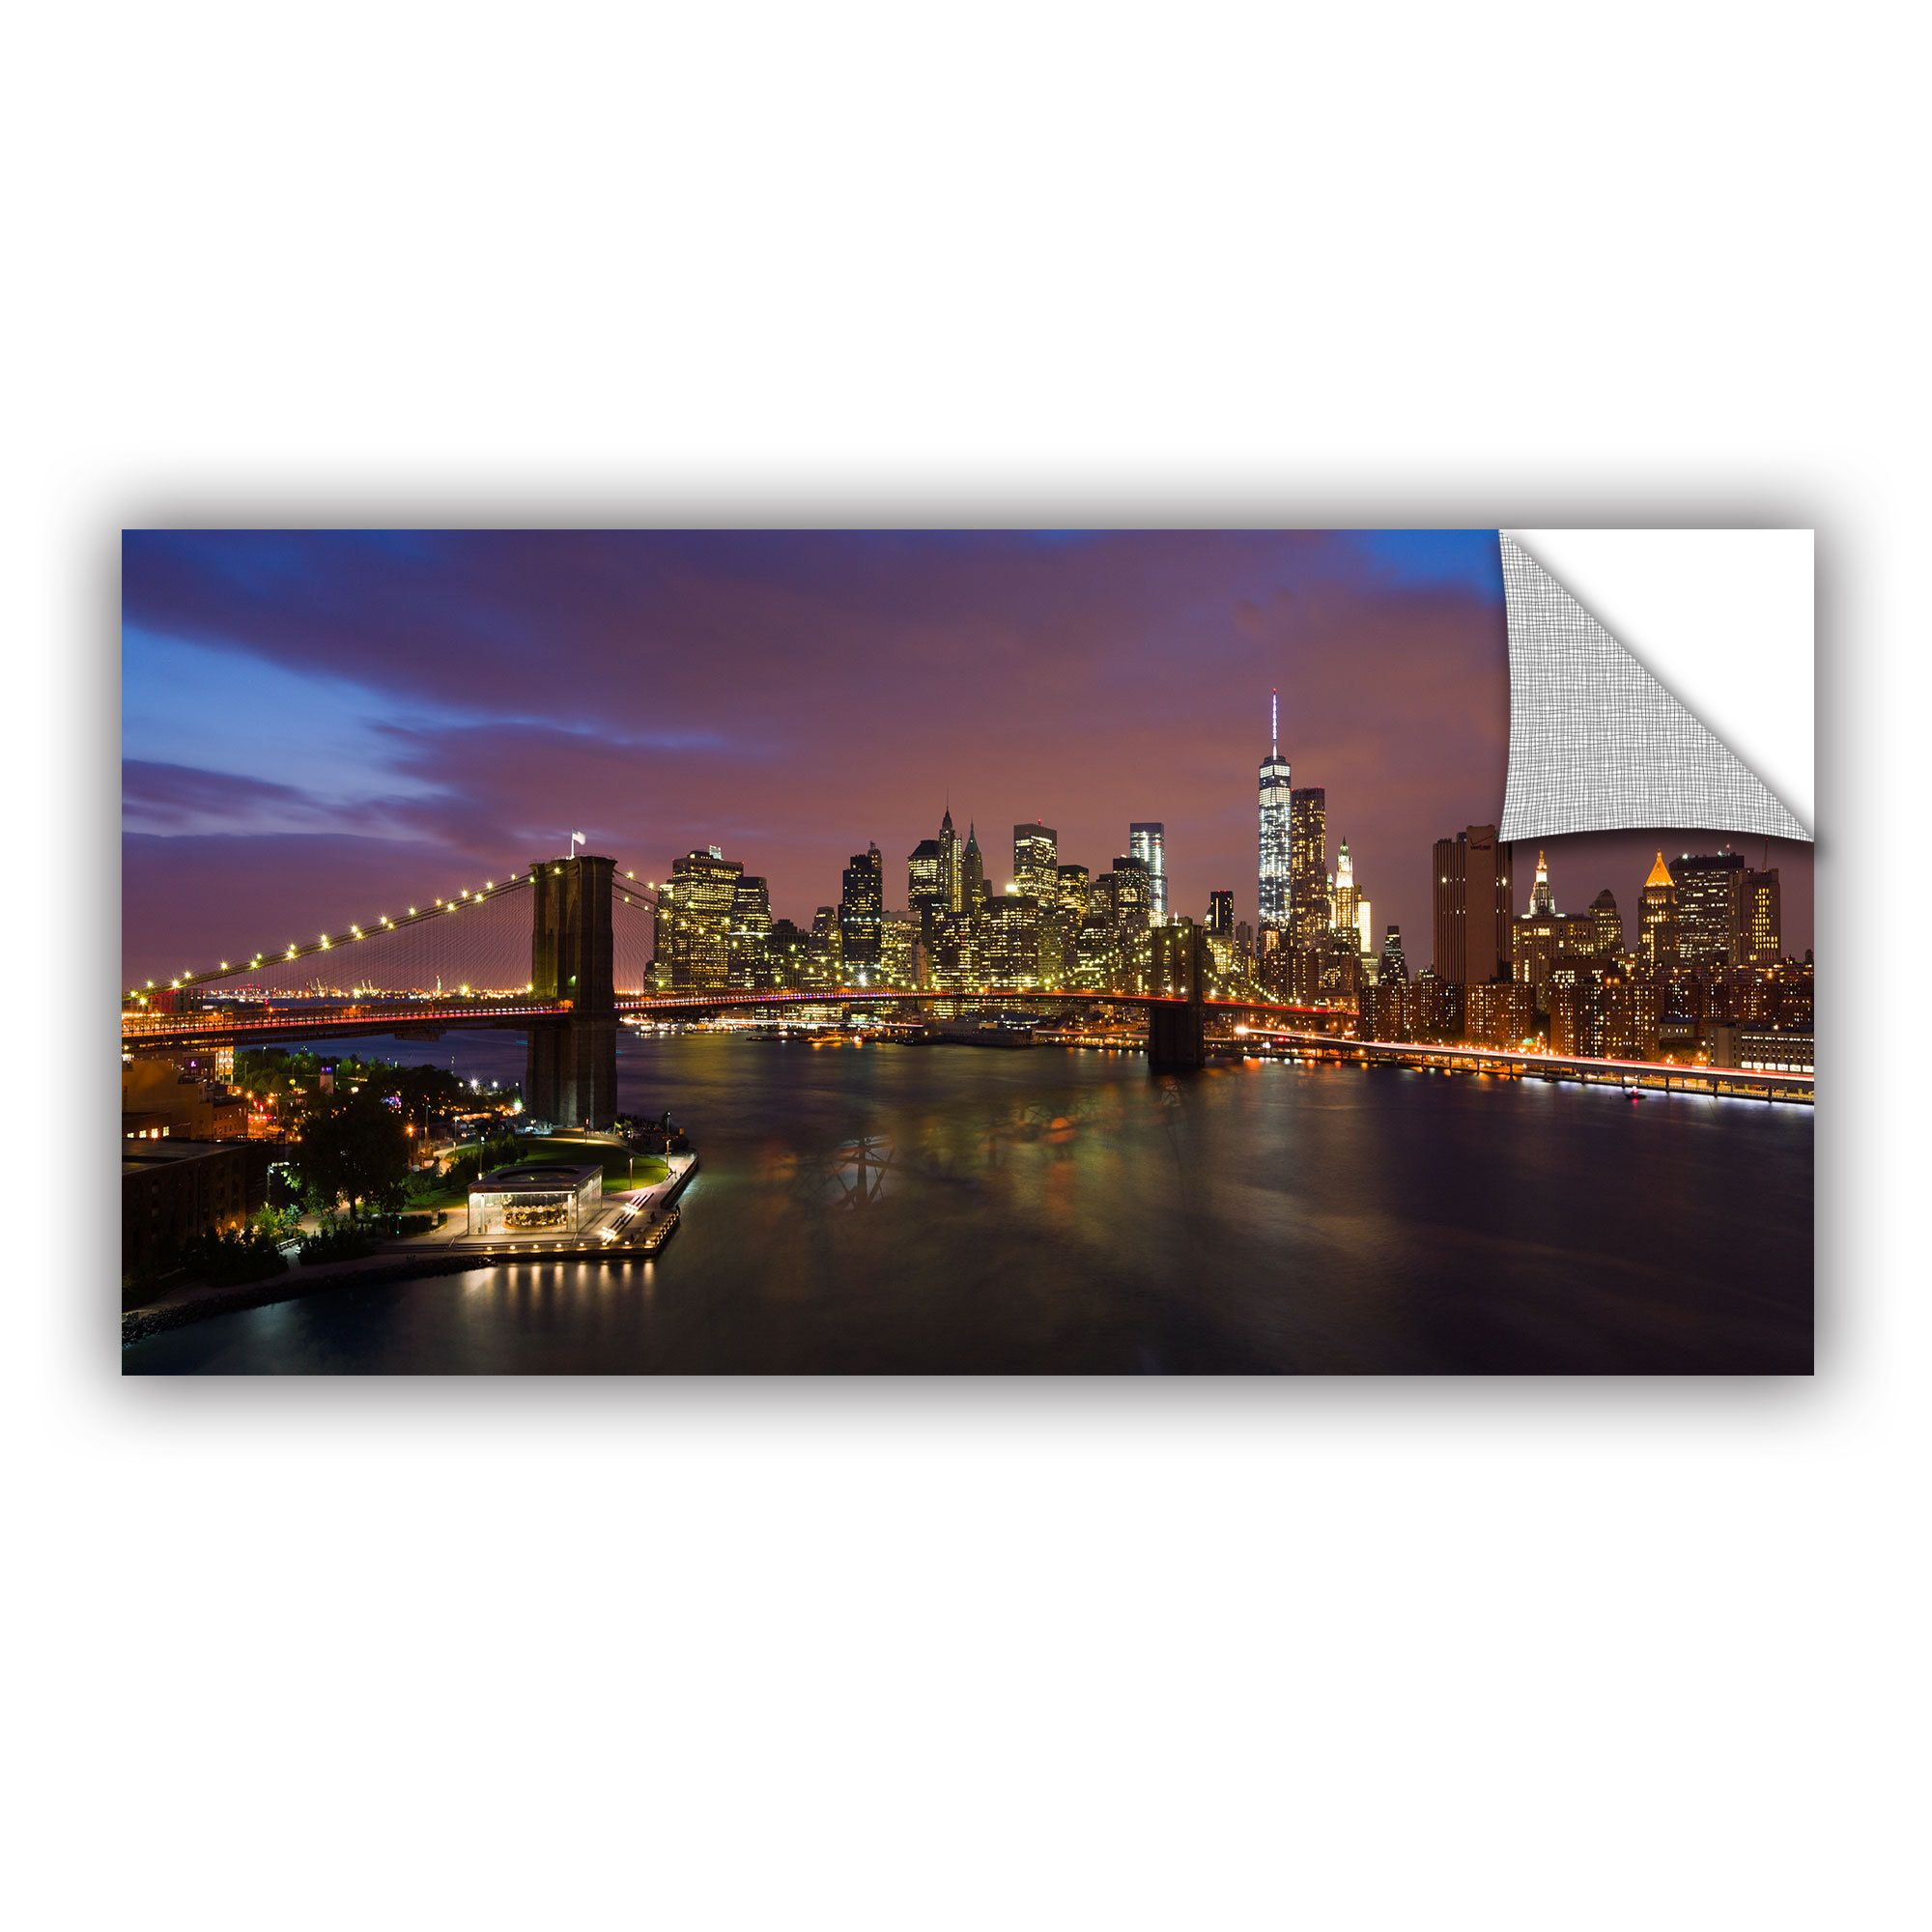 Removable wall art graphic - Artwall Cody York Nyc With Brooklyn Bridge Art Appealz Removable Wall Art By Artwall